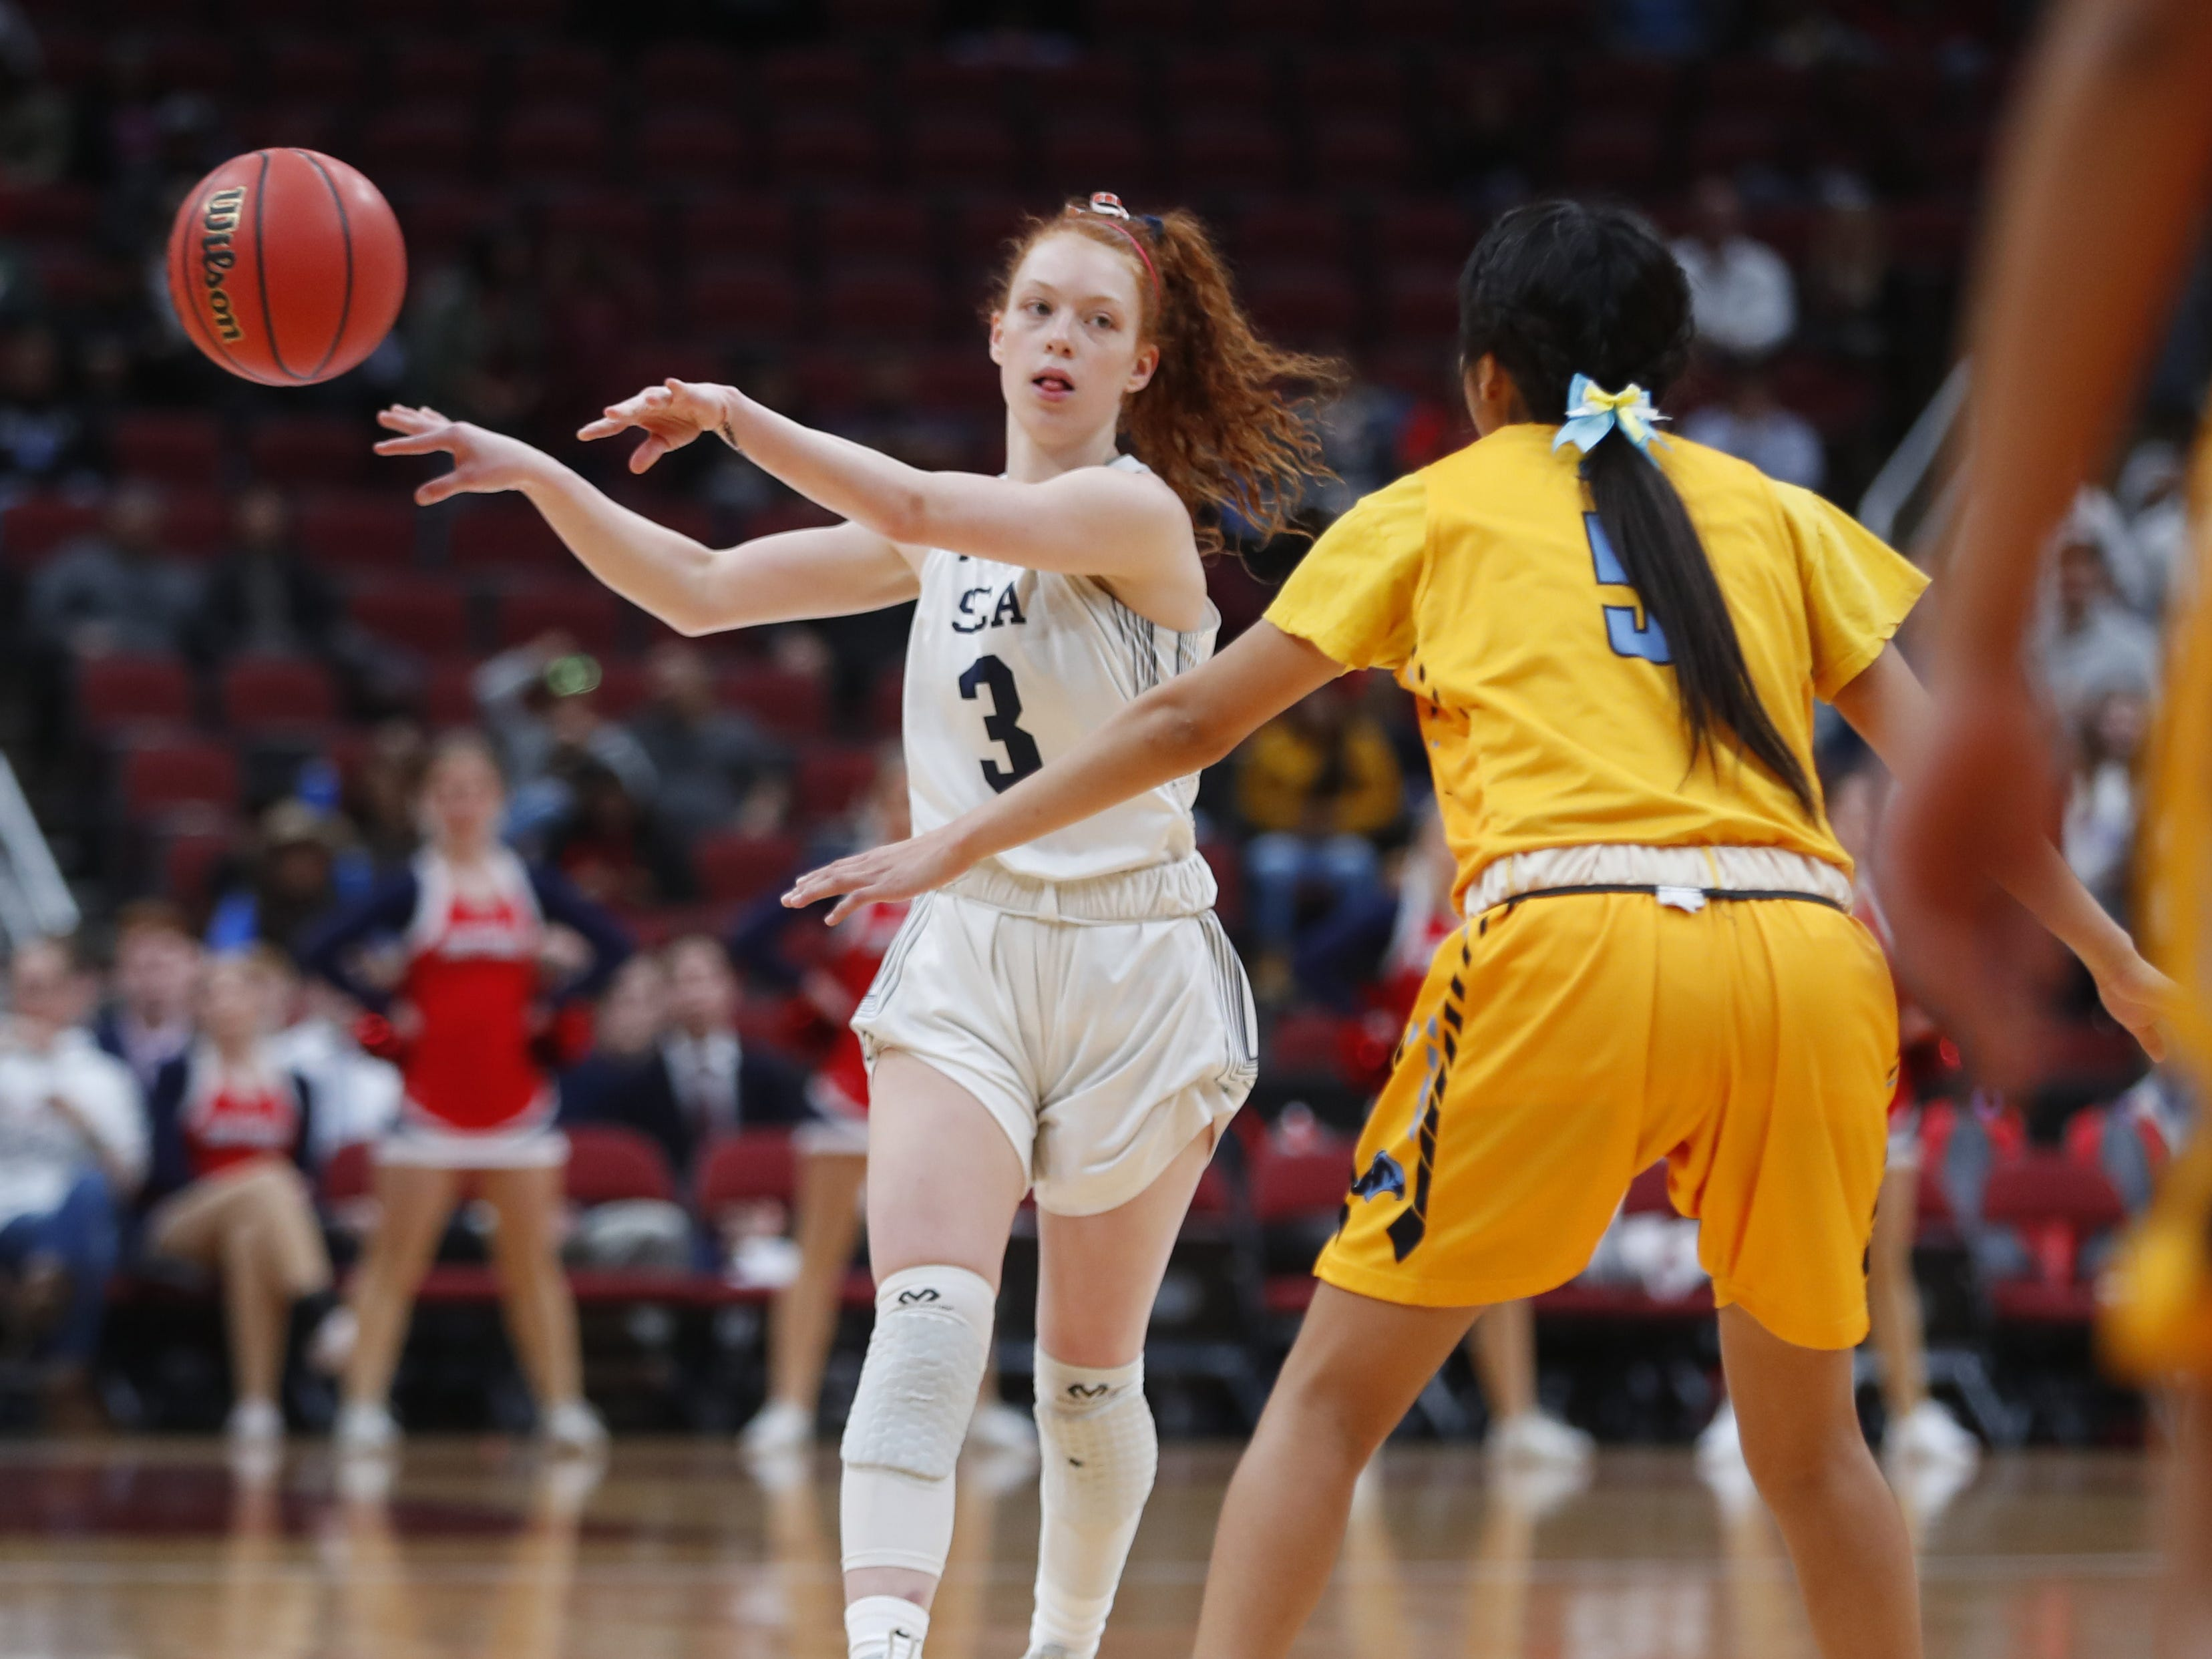 Scottsdale Christian's Kylie Hearn (3) dribbles against Alchesay's Shalicia Colelay (5) during the first half of the 2A girls basketball state championship game at Gila River Arena in Glendale, Ariz. on February 23, 2019.